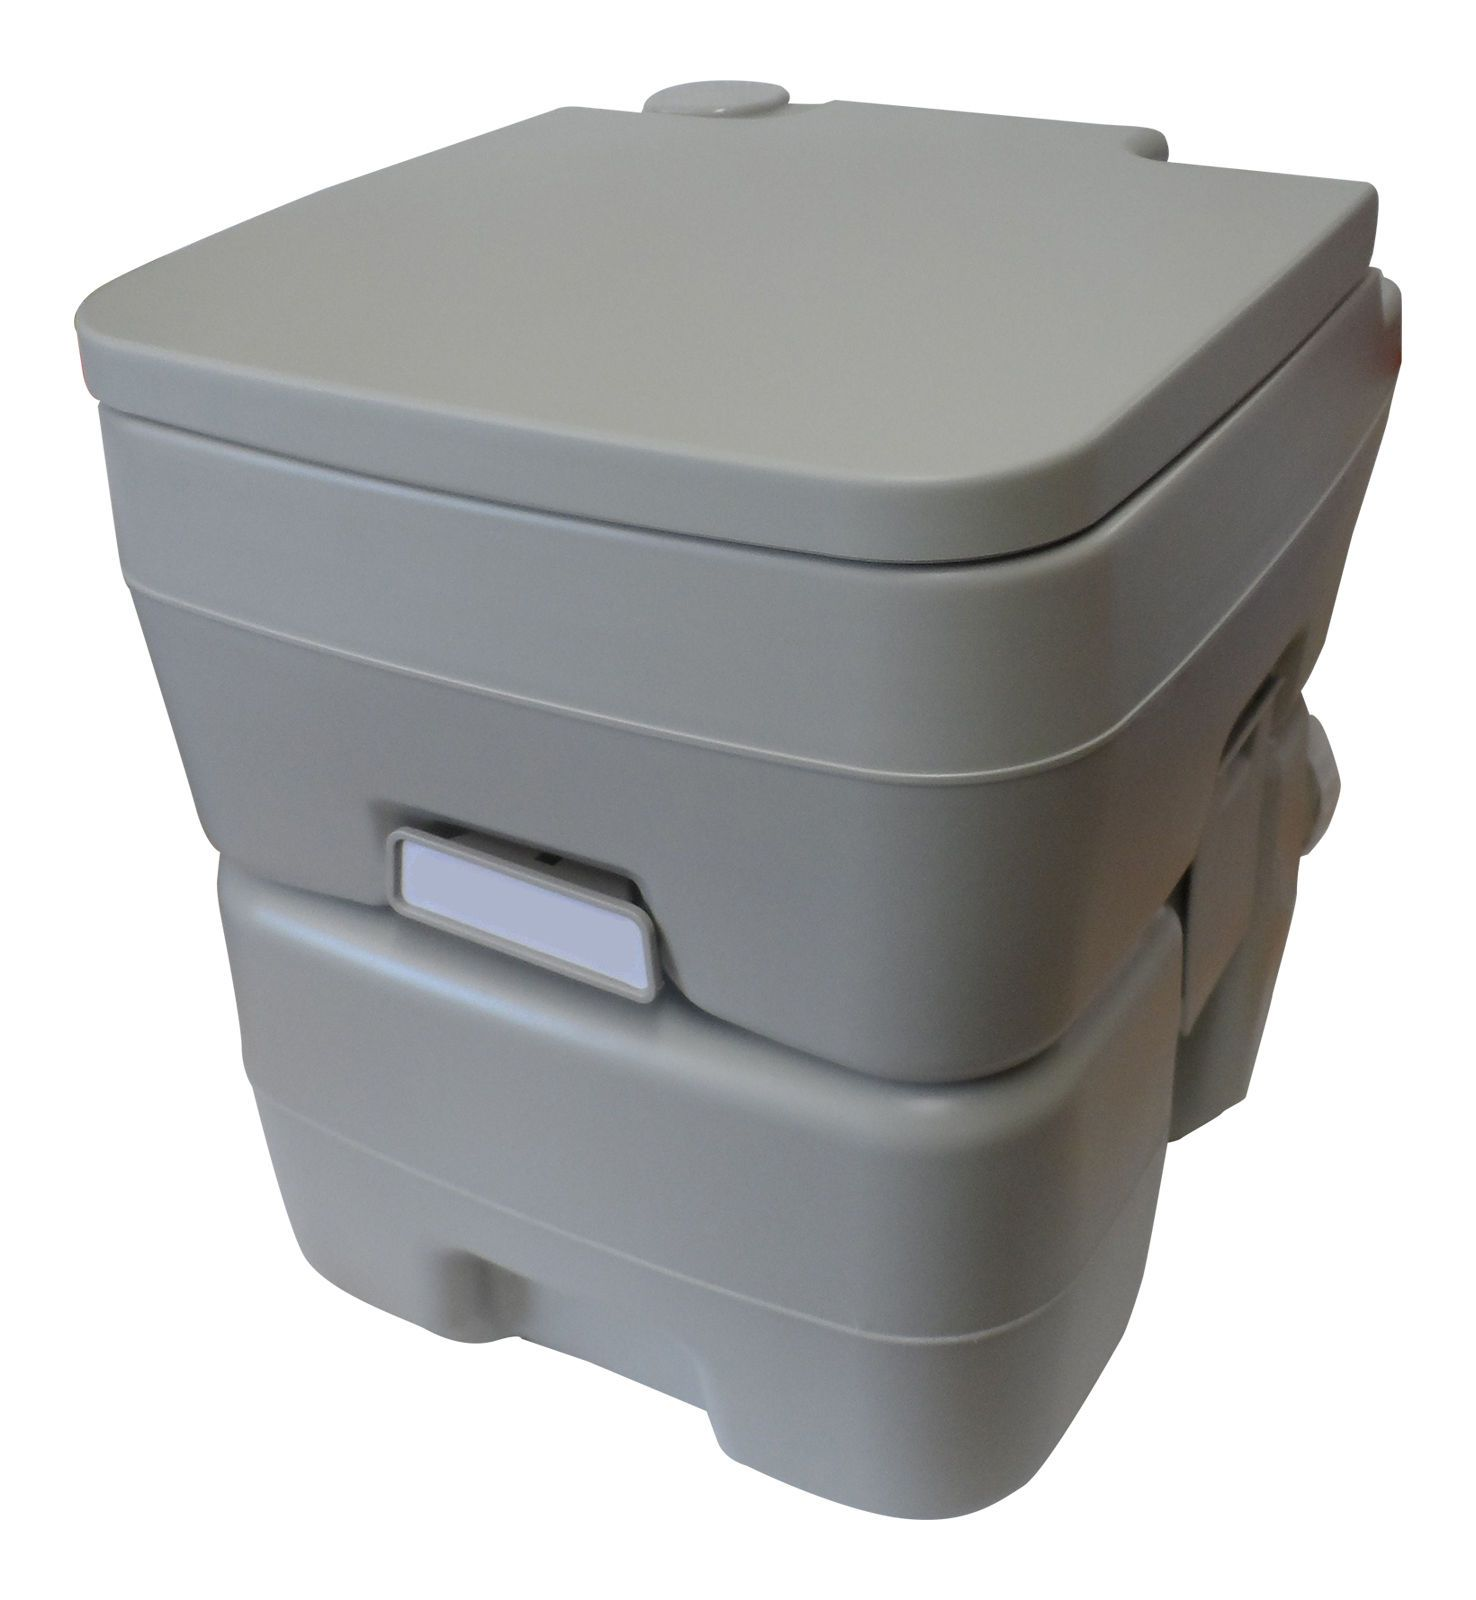 20l Luxury Portable Chemical Toilet Porta Potty Camping